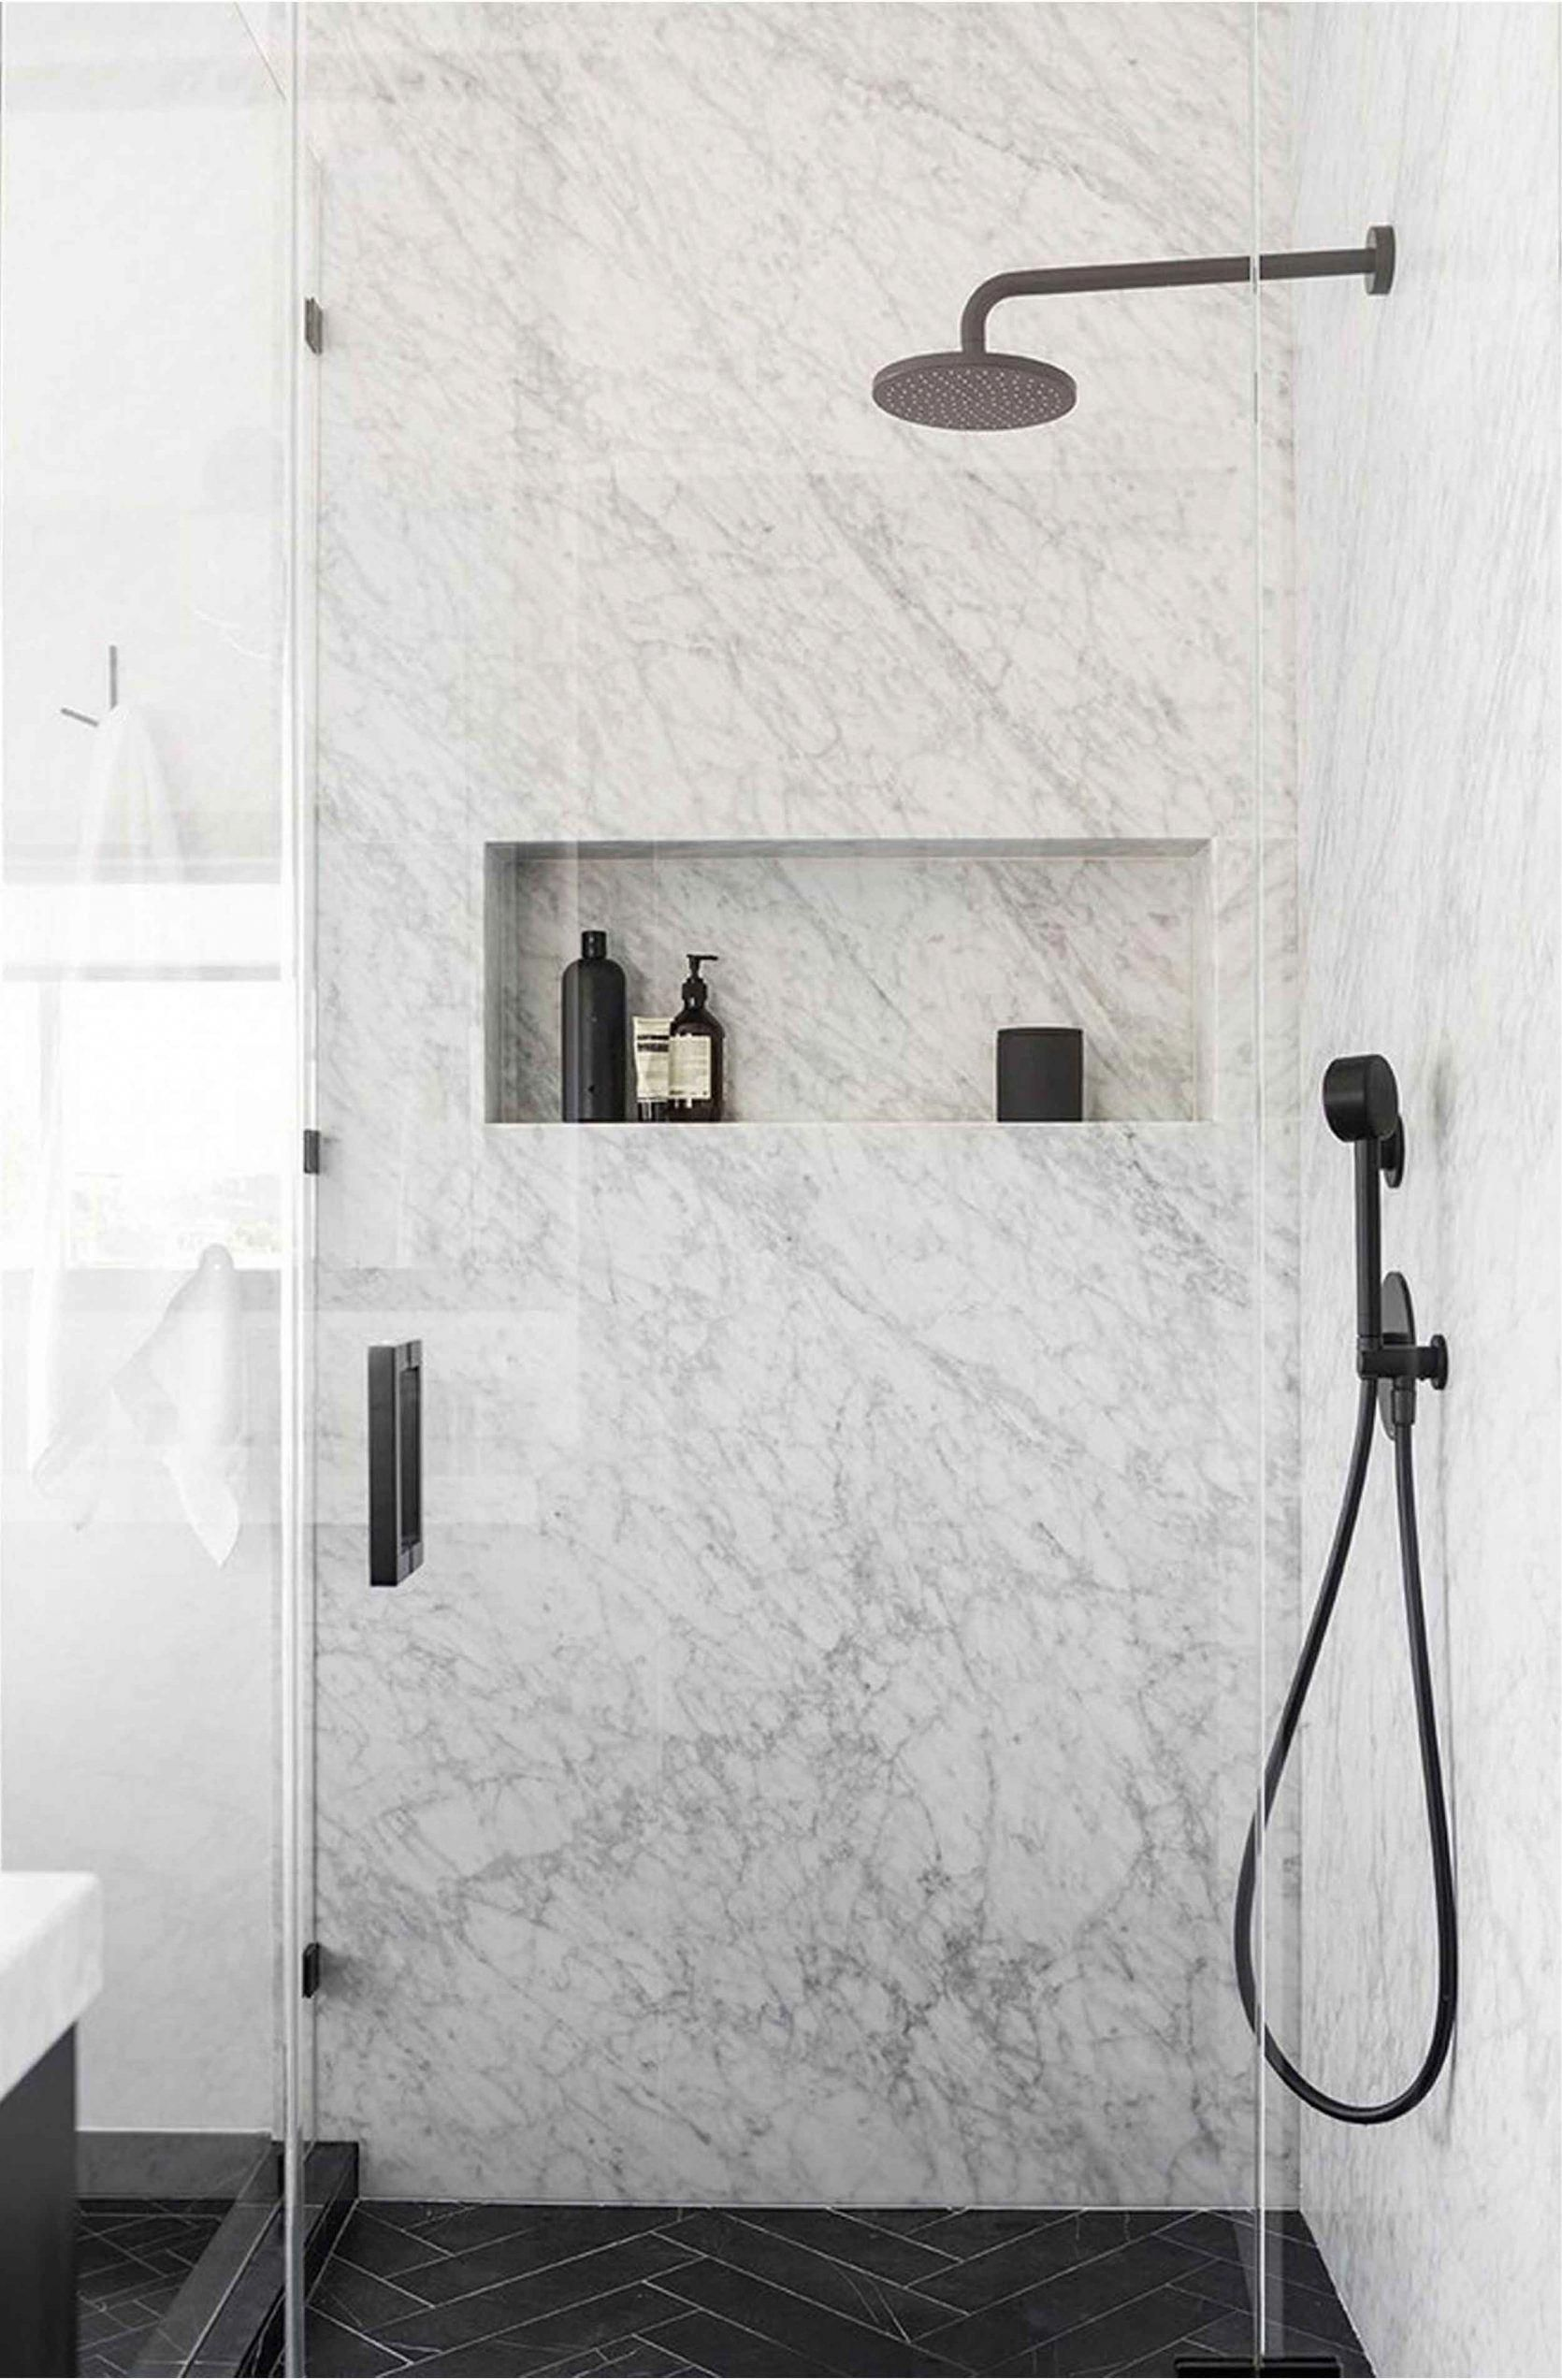 Slab Marble Shower With Horizontal Niche And Black Fixtures With